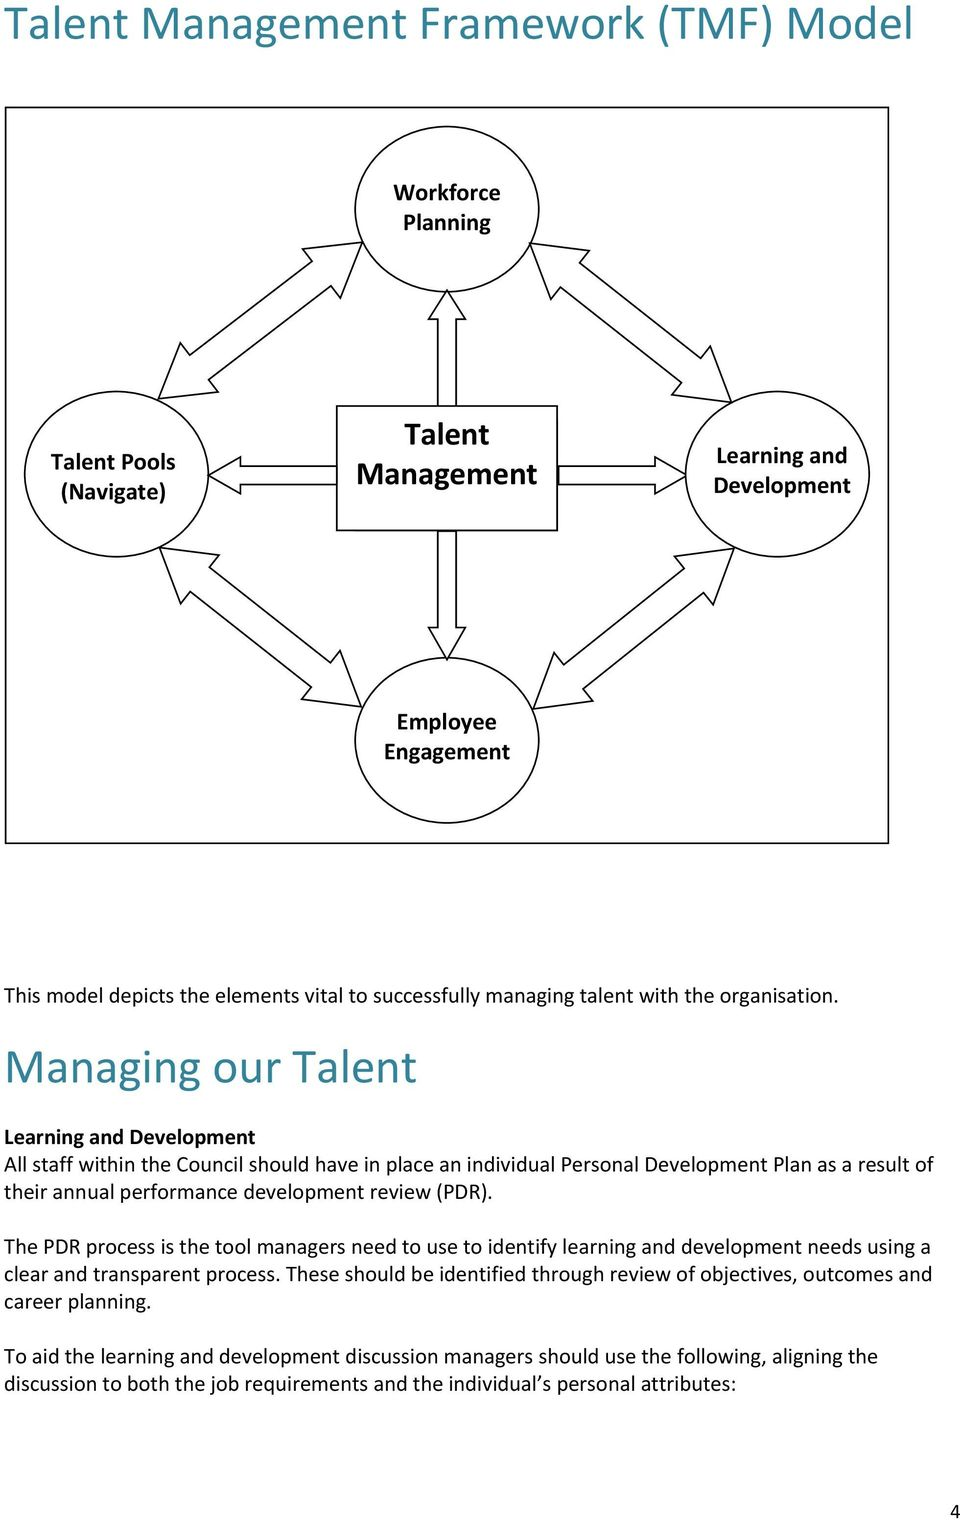 Managing our Talent Learning and Development All staff within the Council should have in place an individual Personal Development Plan as a result of their annual performance development review (PDR).